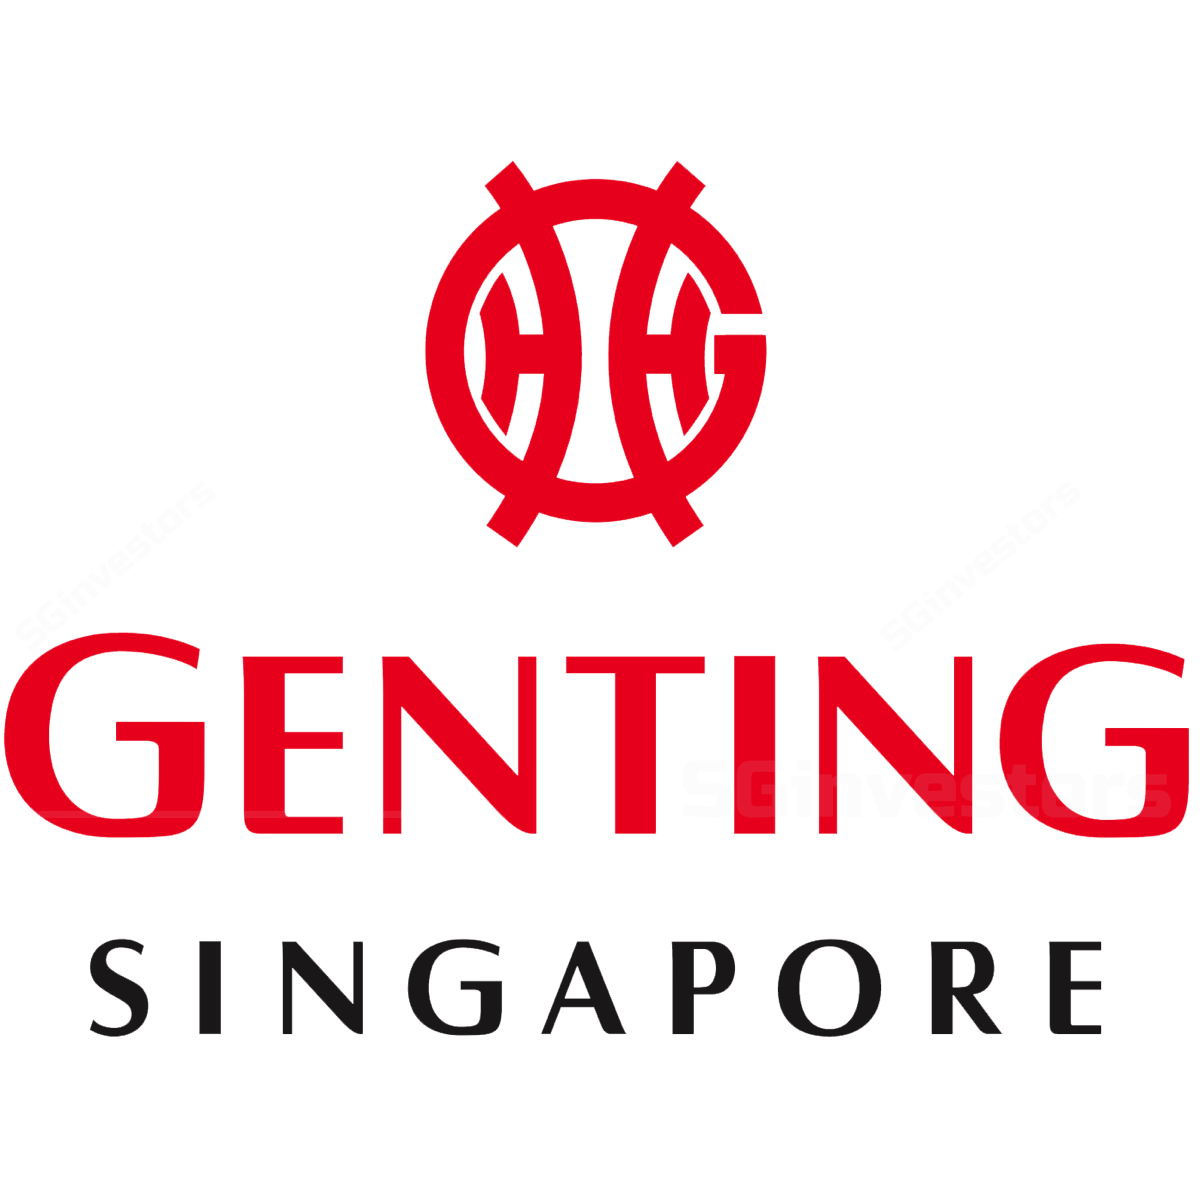 Genting Singapore - CIMB Research 2017-11-06: 3Q17: Rolling With The Bigwigs